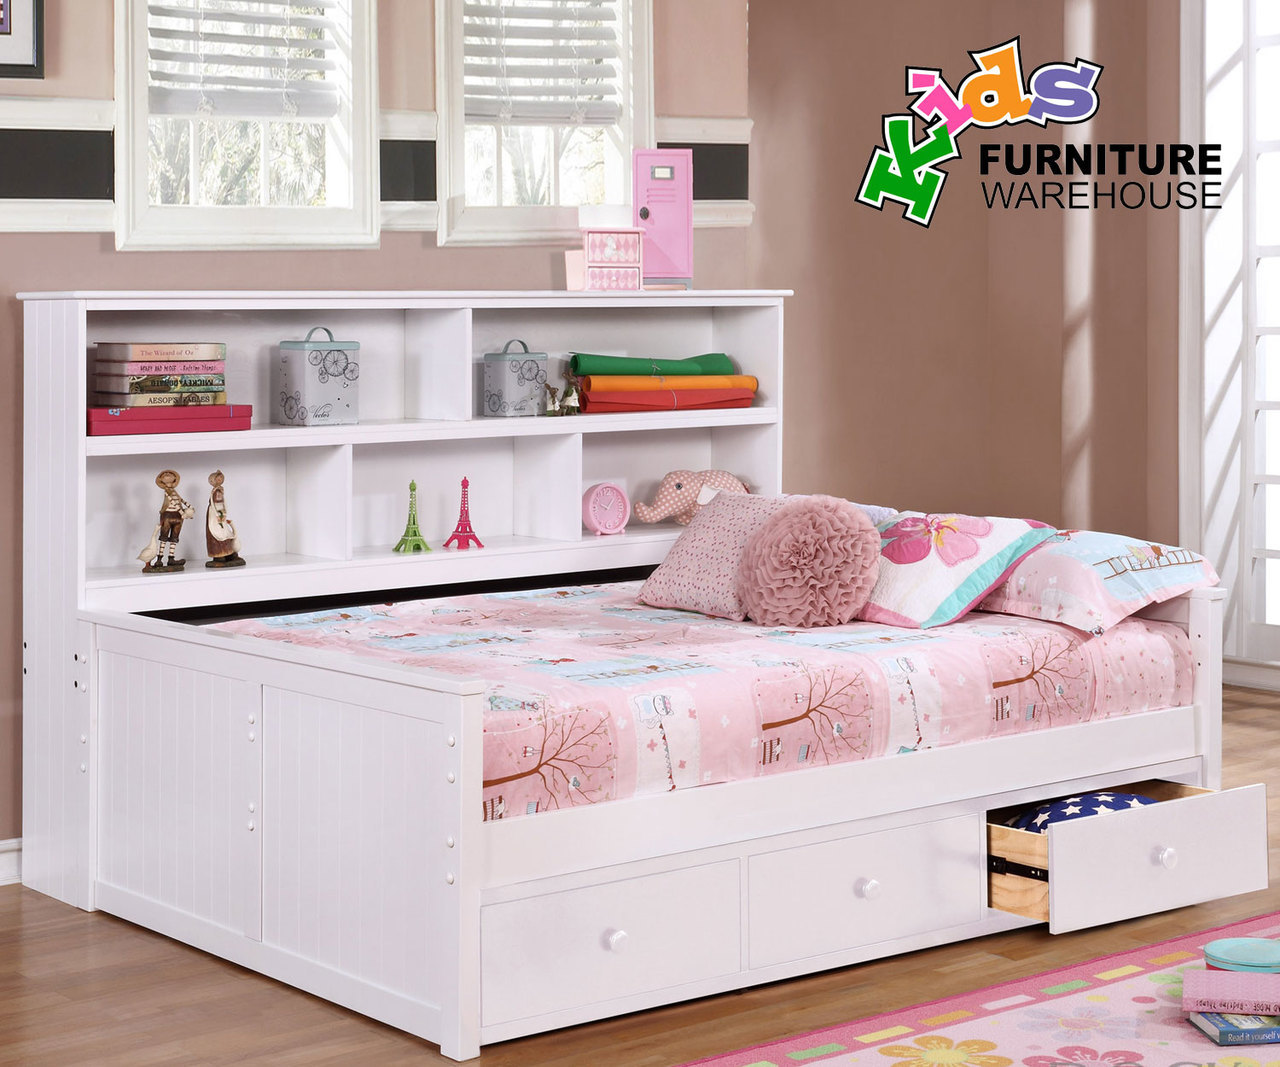 Picture of: The Best Day Beds For Your Child S Room Or Guest Room Kids Furniture Warehouse